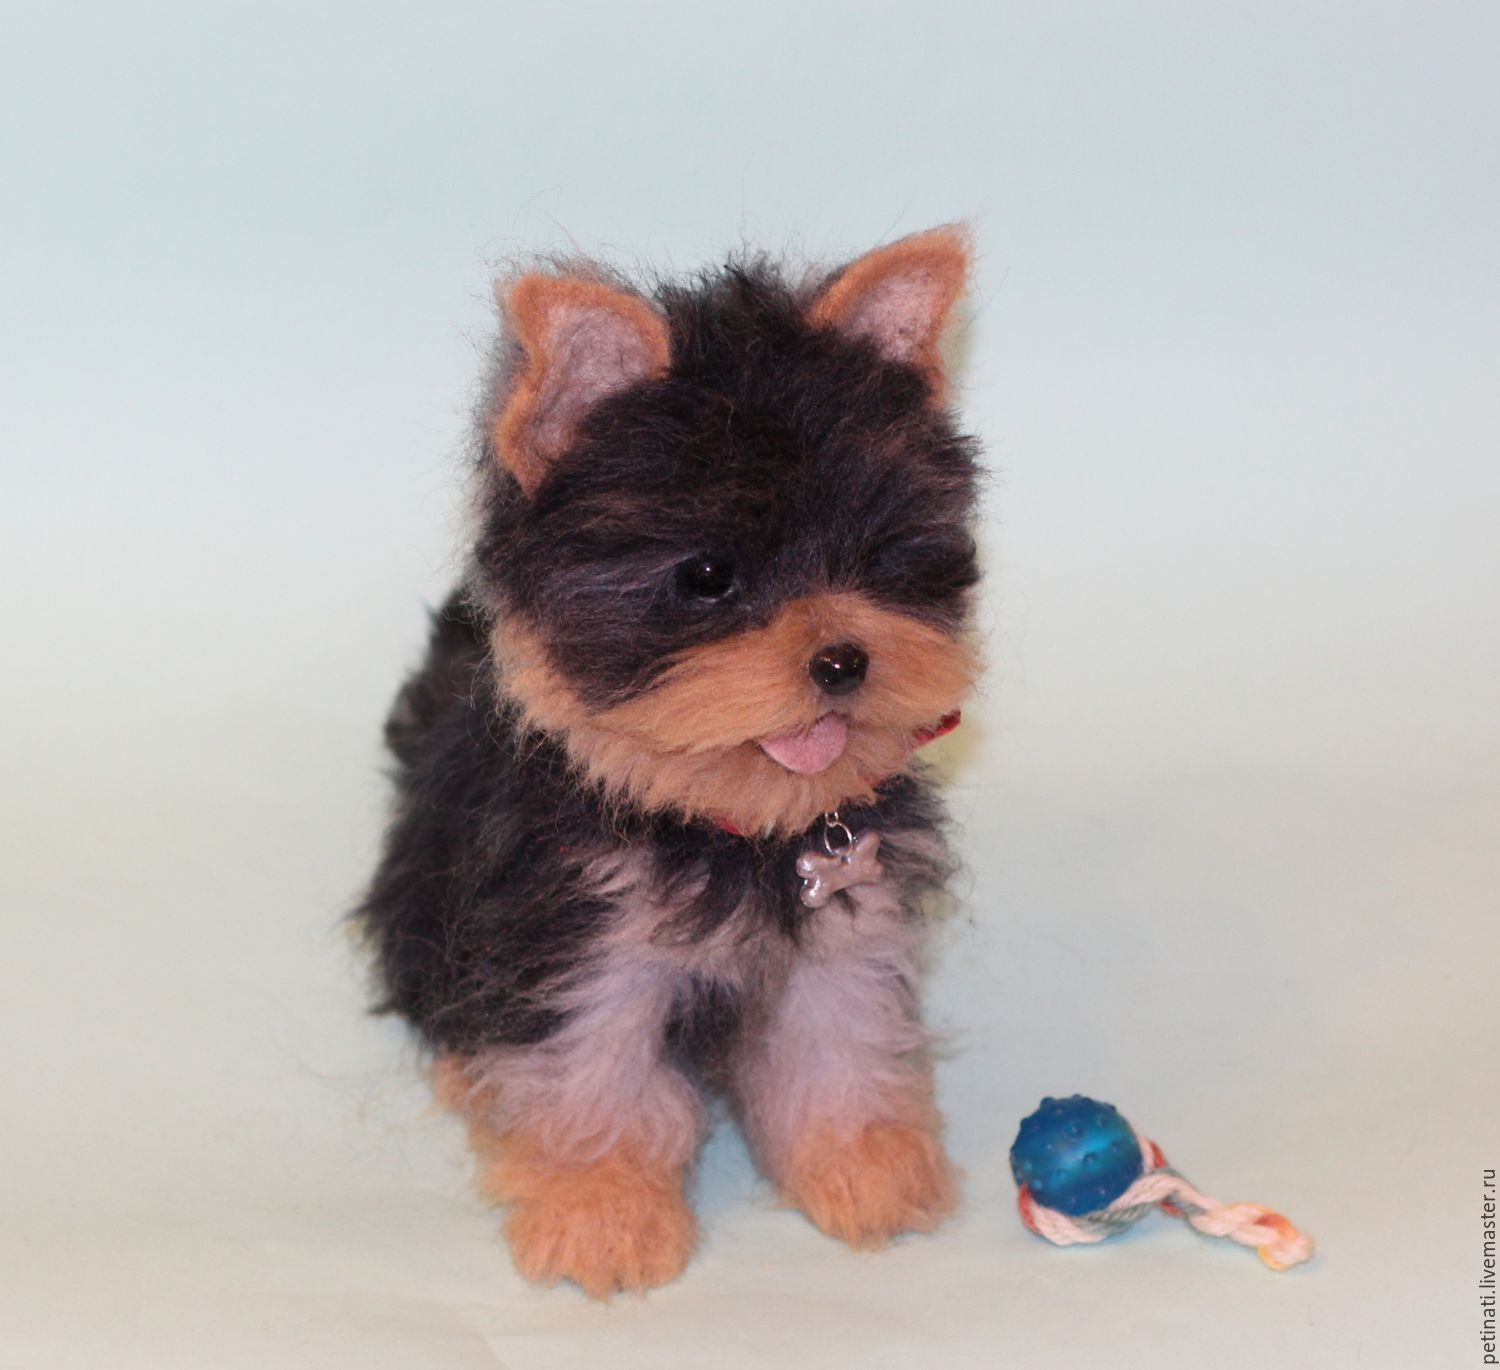 Baby Yorkshire Terrier Mouse Yorkshire Terrier Puppies